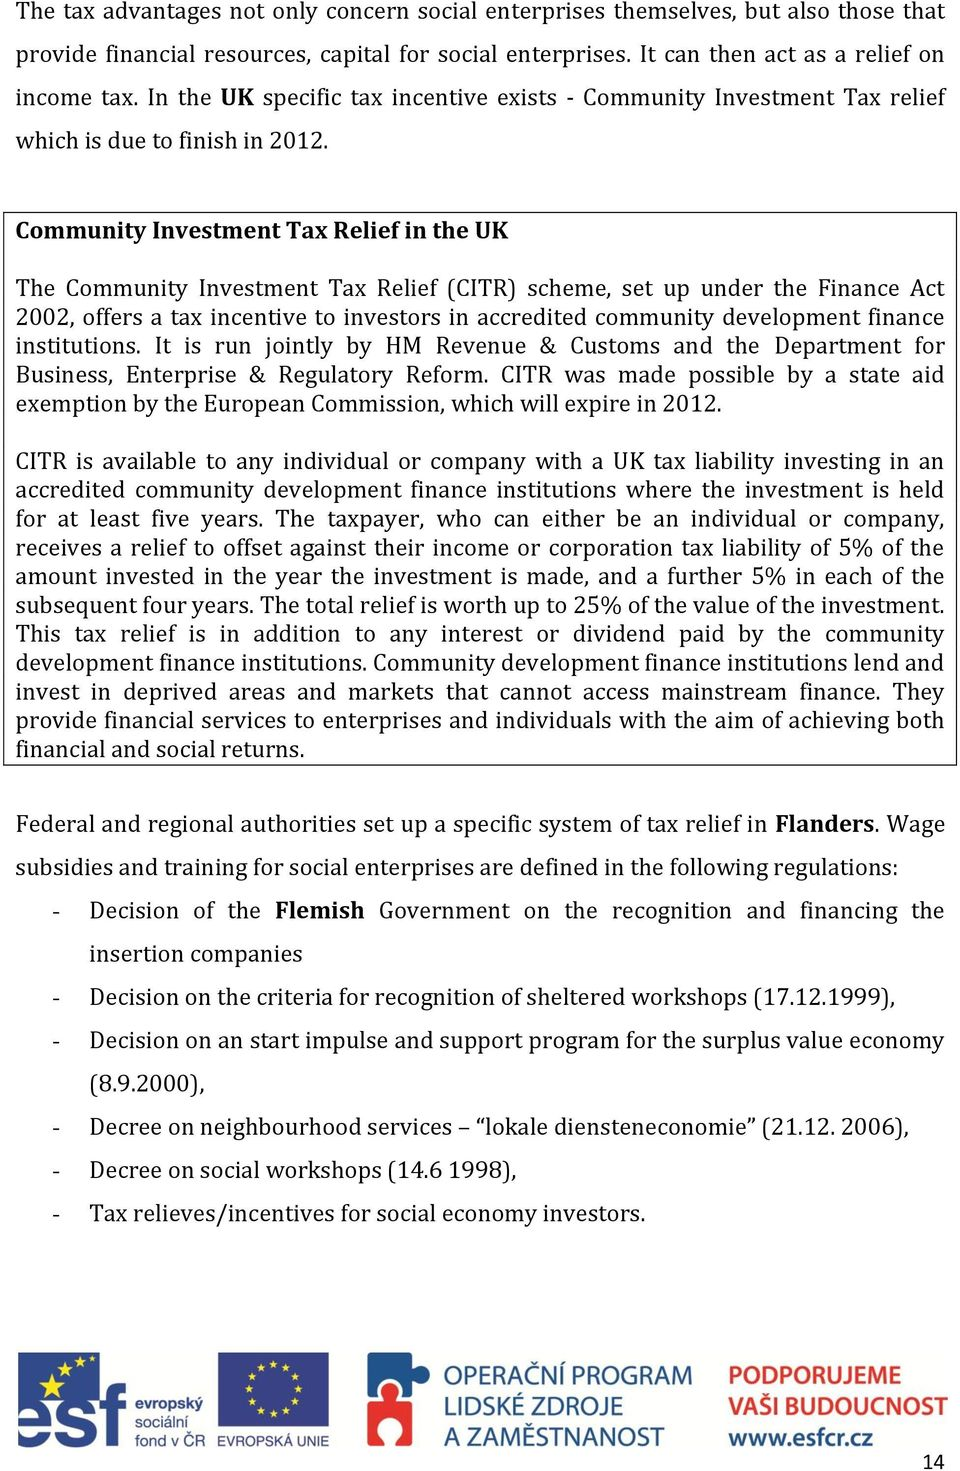 Community Investment Tax Relief in the UK The Community Investment Tax Relief (CITR) scheme, set up under the Finance Act 2002, offers a tax incentive to investors in accredited community development